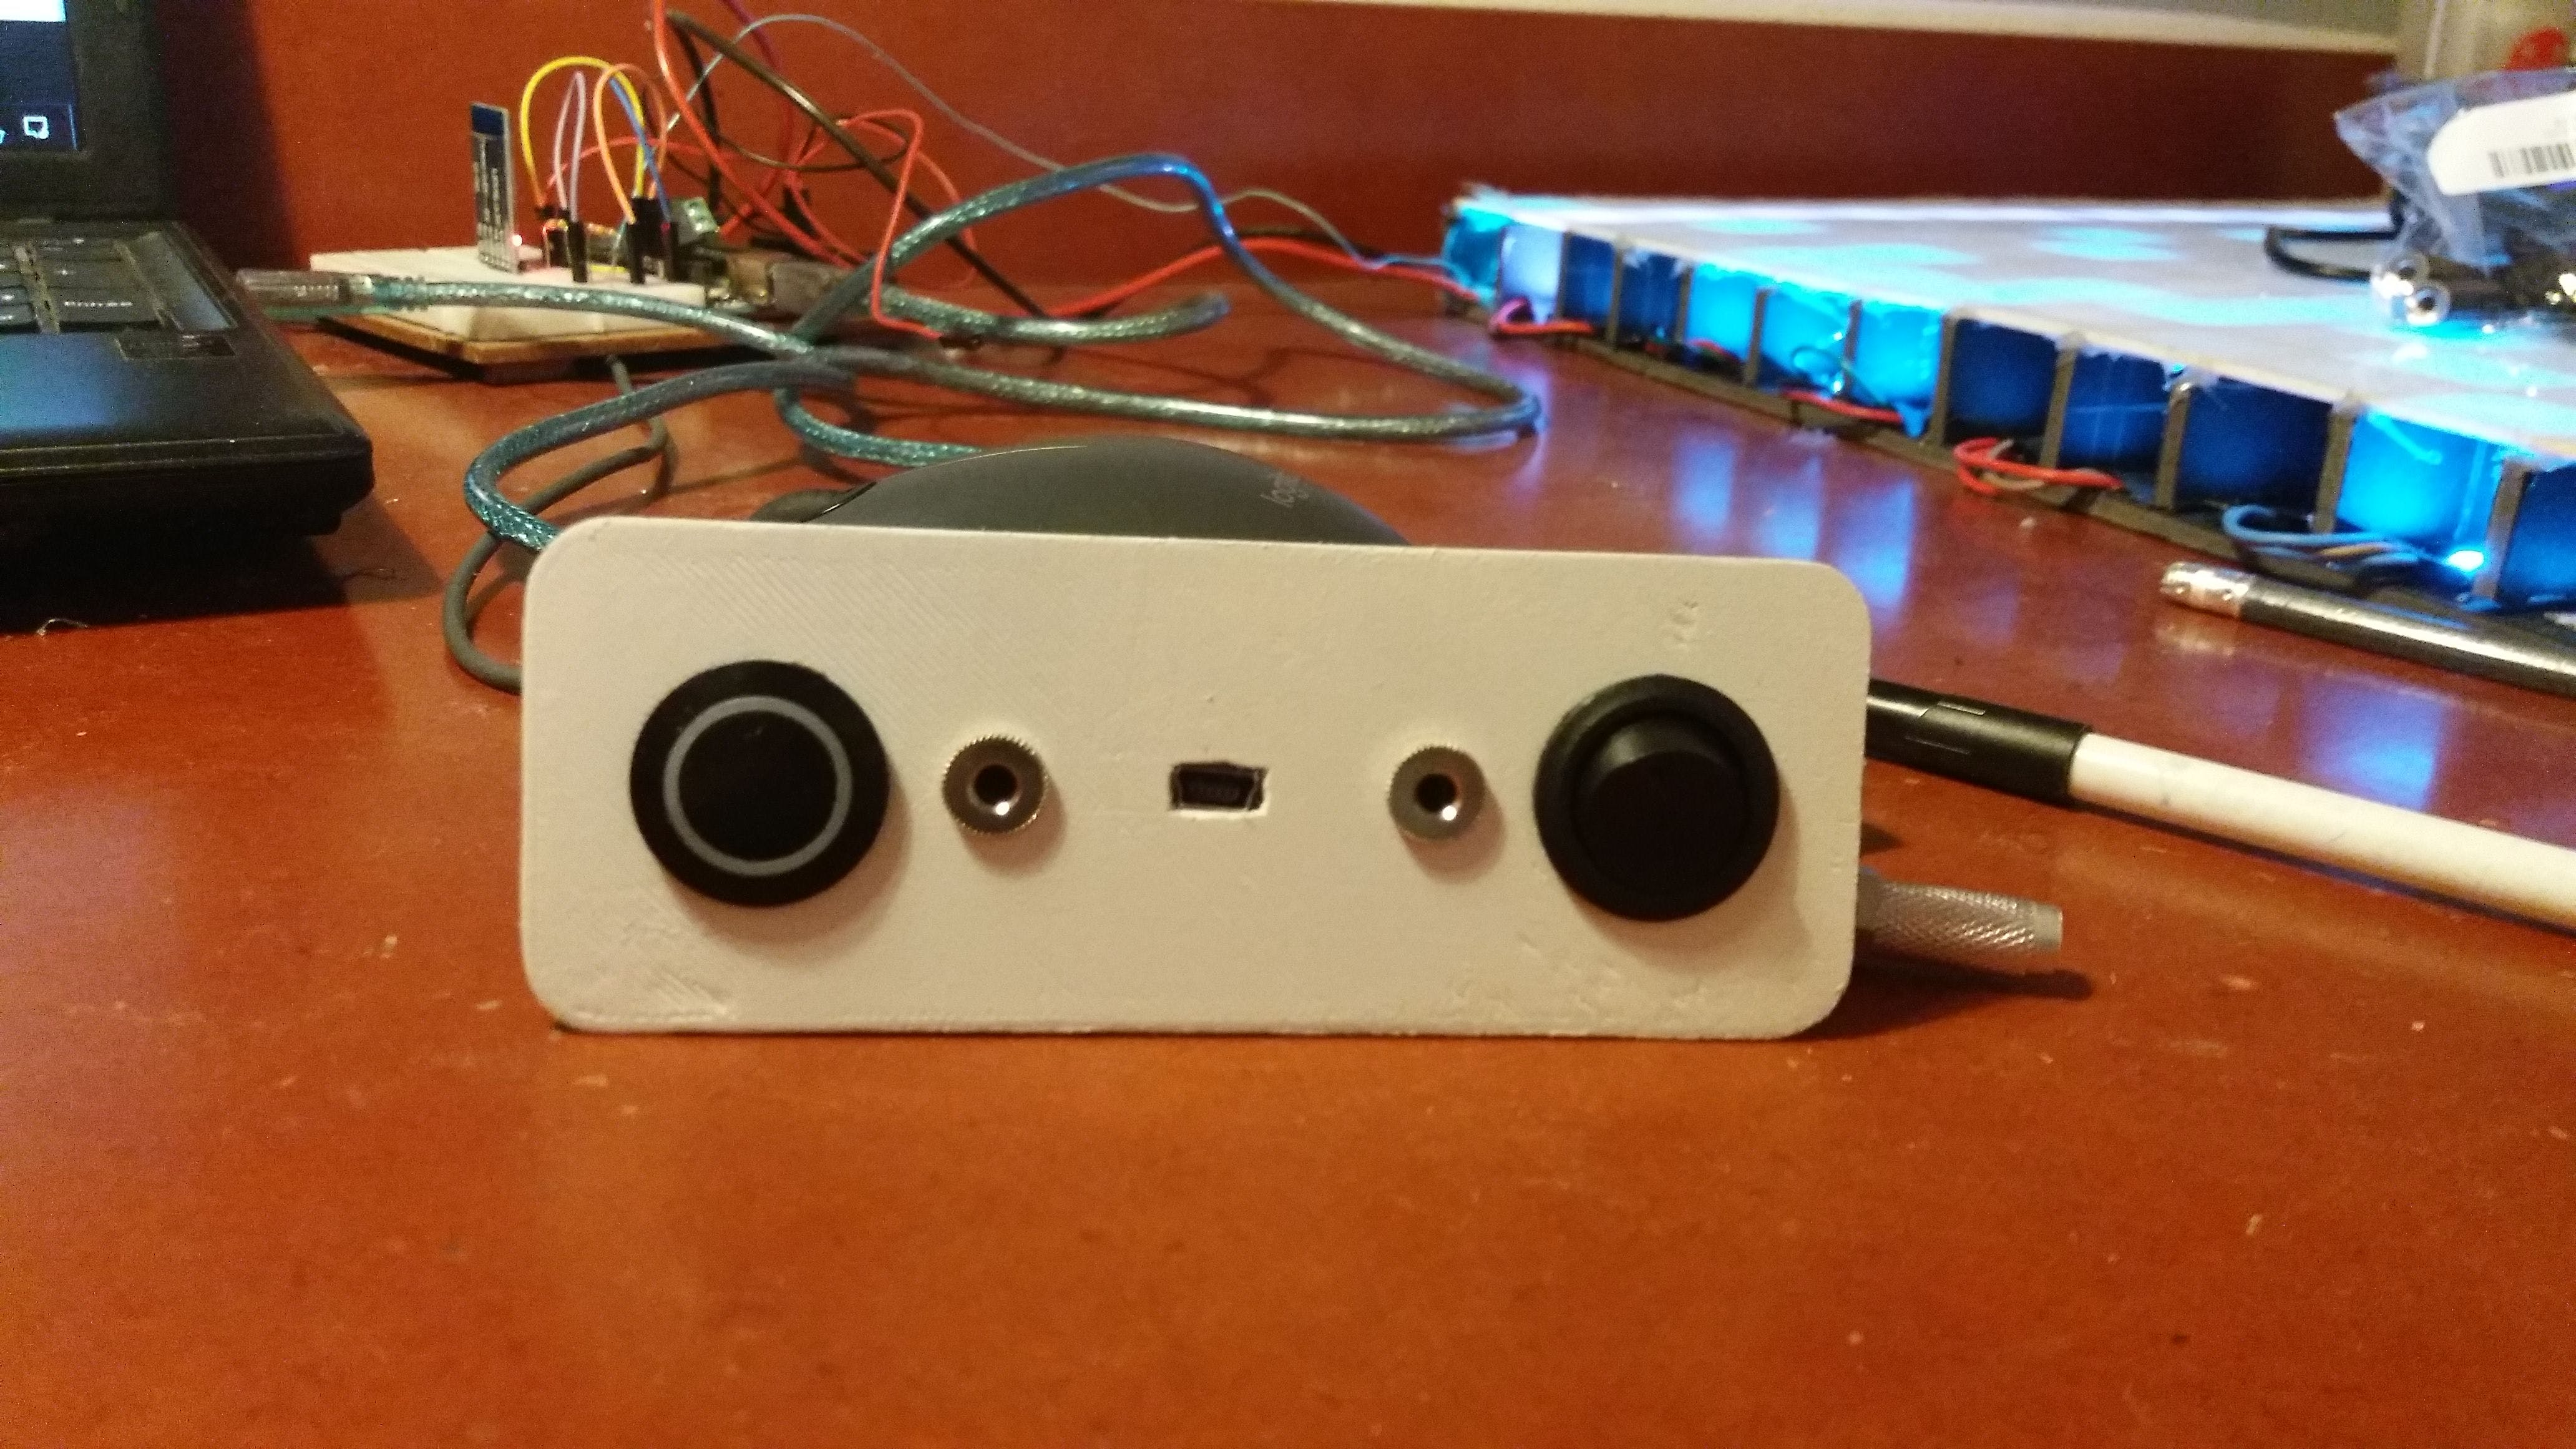 The final look of the interface (Menu/validation button, arduino USB, Audio IO, power switch)